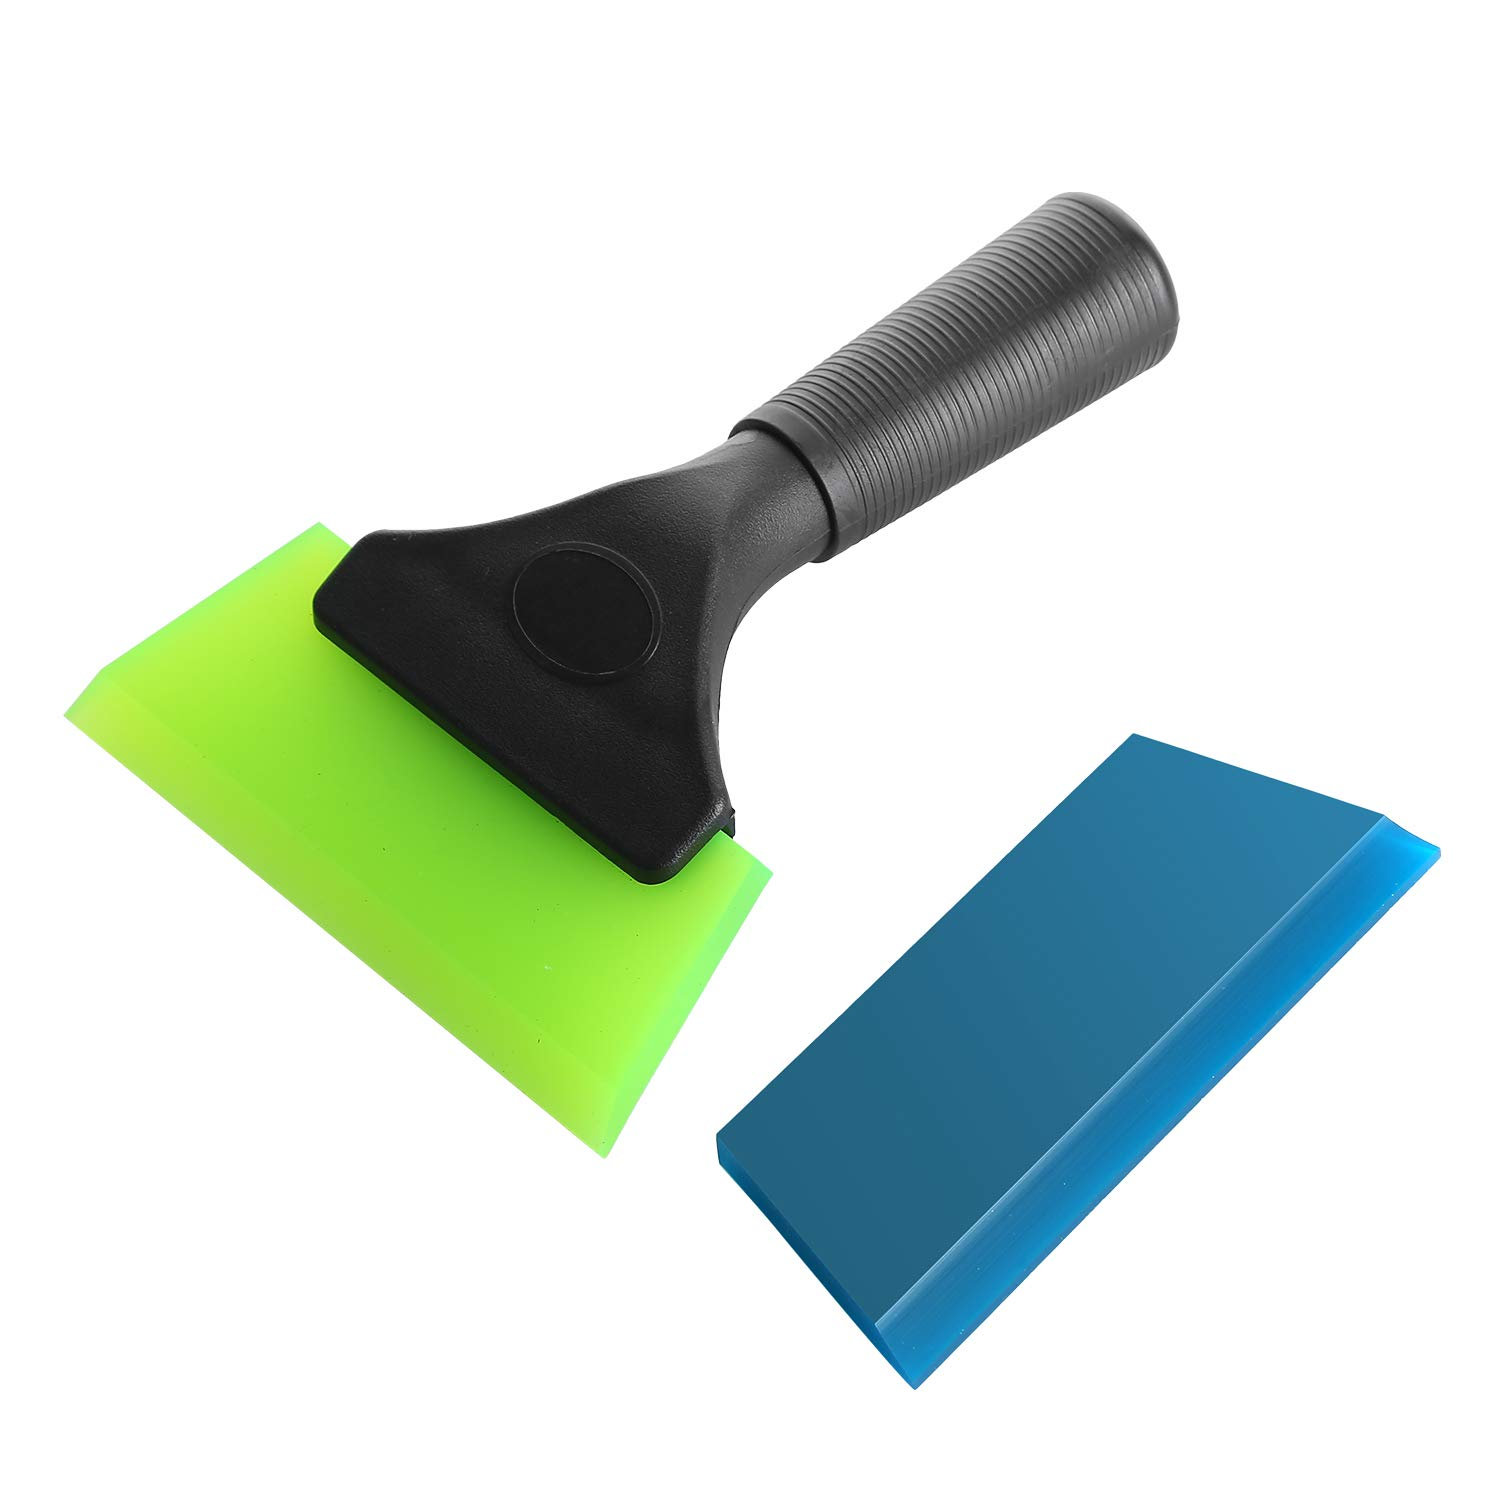 Household Clean GUGUGI CARTINTS Handy Rubber Squeegee Shower Water Blade Window Wiper Vinyl Wrap Squeegee with Non-Slip Handle for Auto Vinyl Wrap